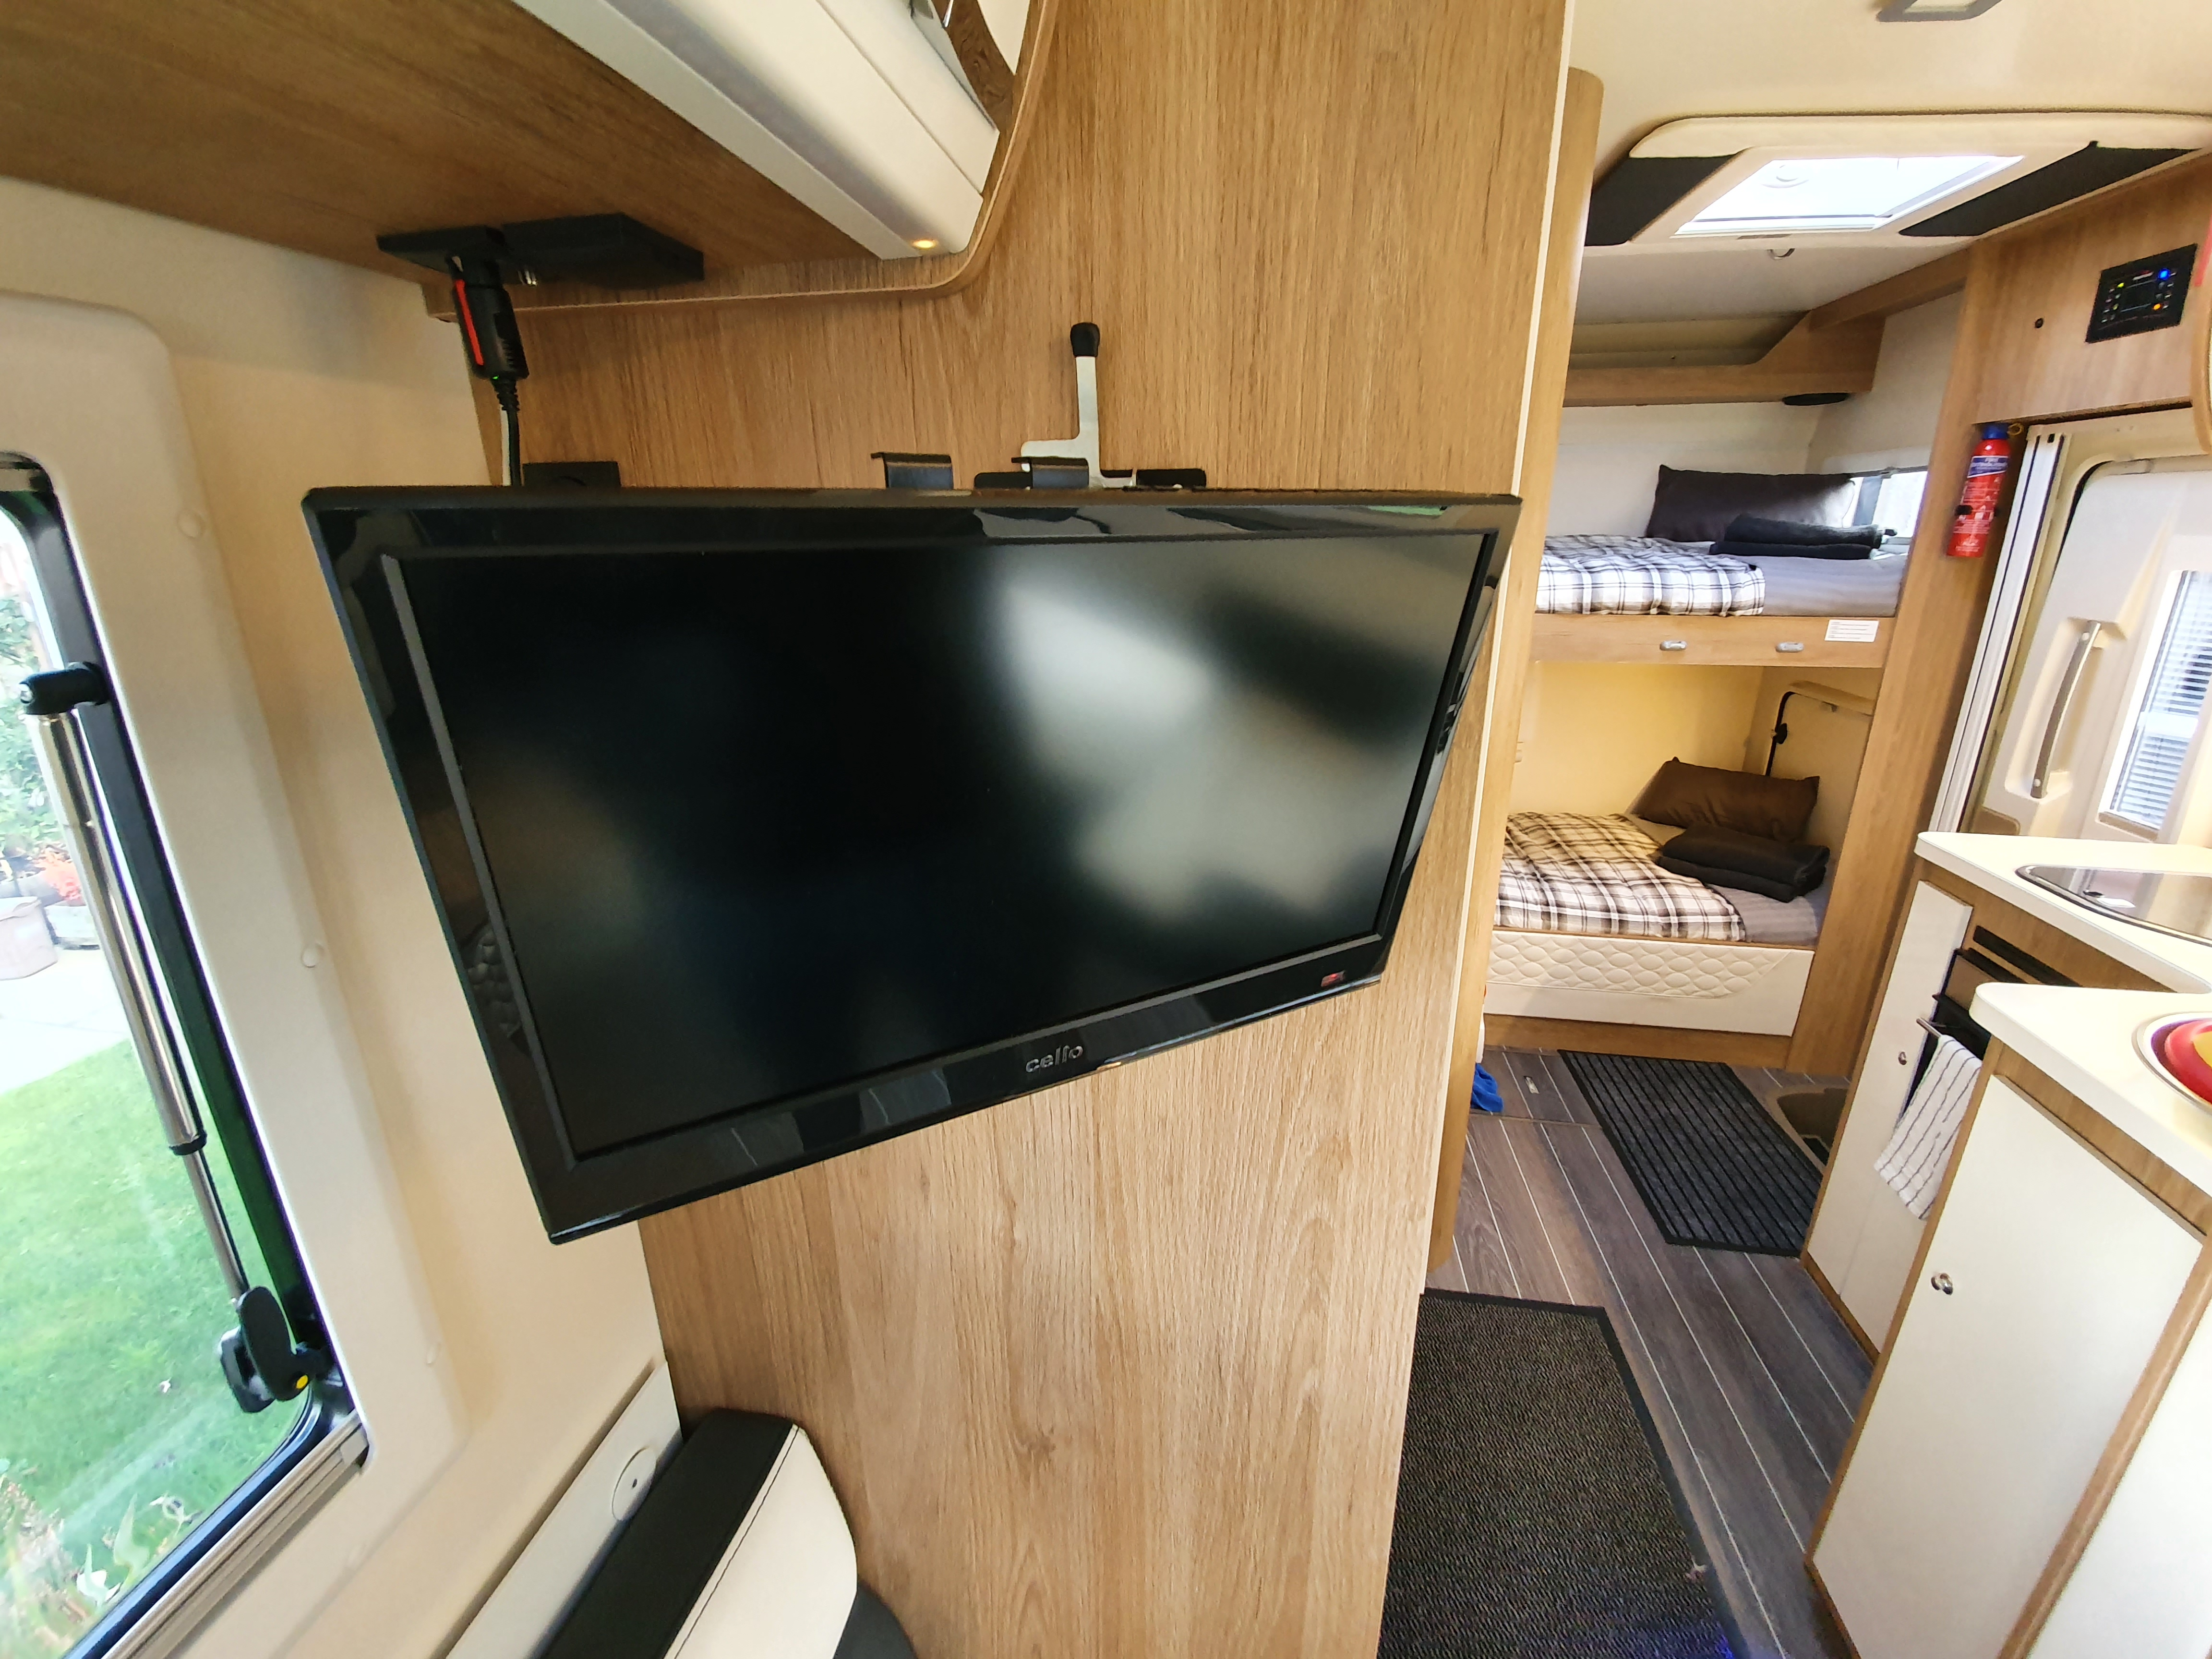 Image of TV & DVD player located in the main lounge area of the motorhome